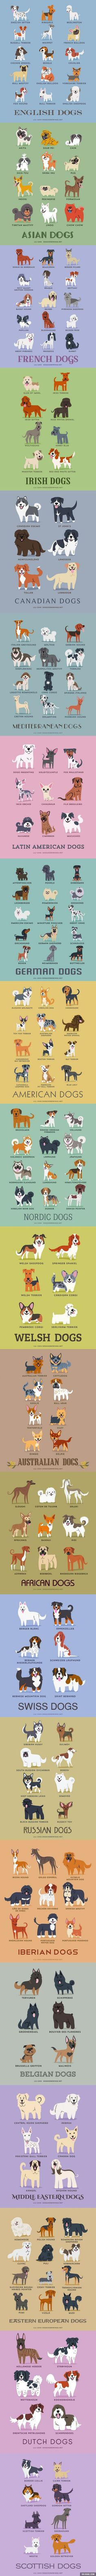 "Of course Riley FERGUSON is a Scottish breed!! :) ""Dogs Of The World"" Grouped By Their Geographic Origins:"